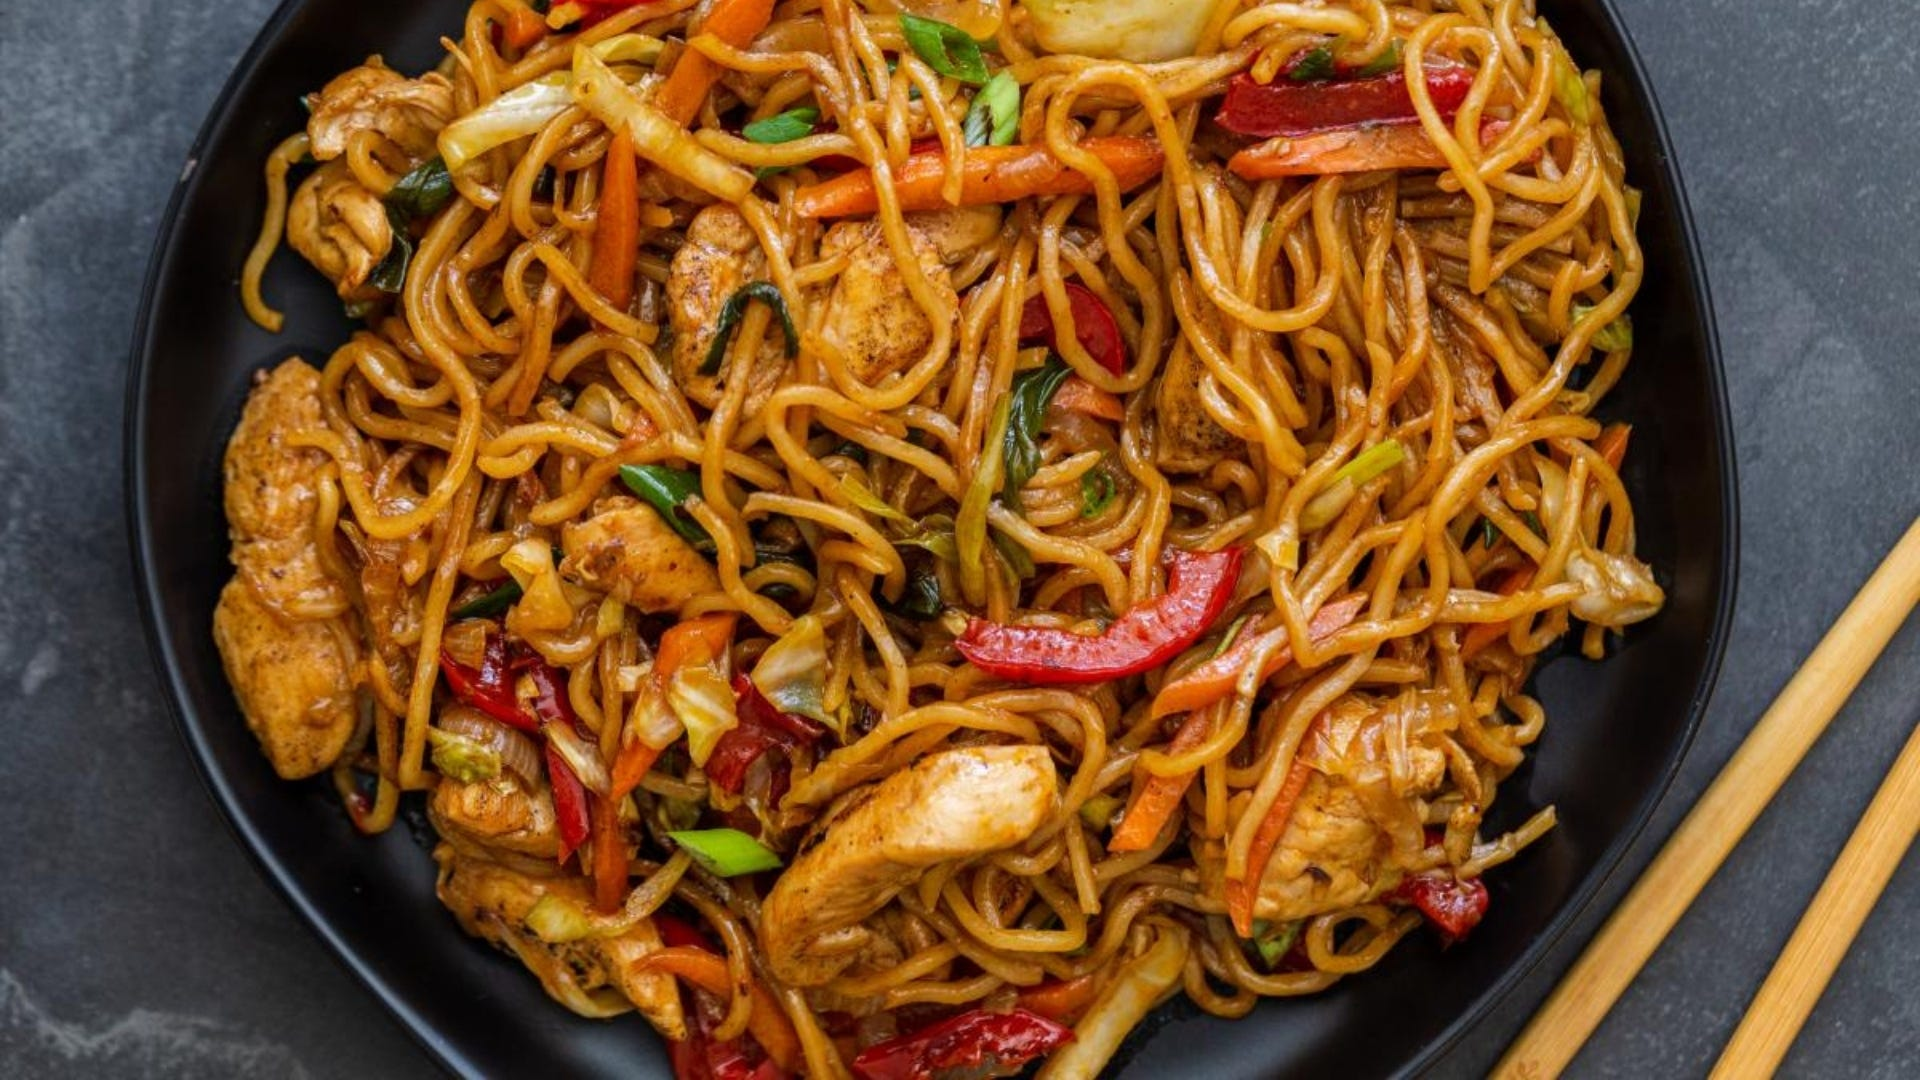 plate of yakisoba noodles, chicken, and vegetables